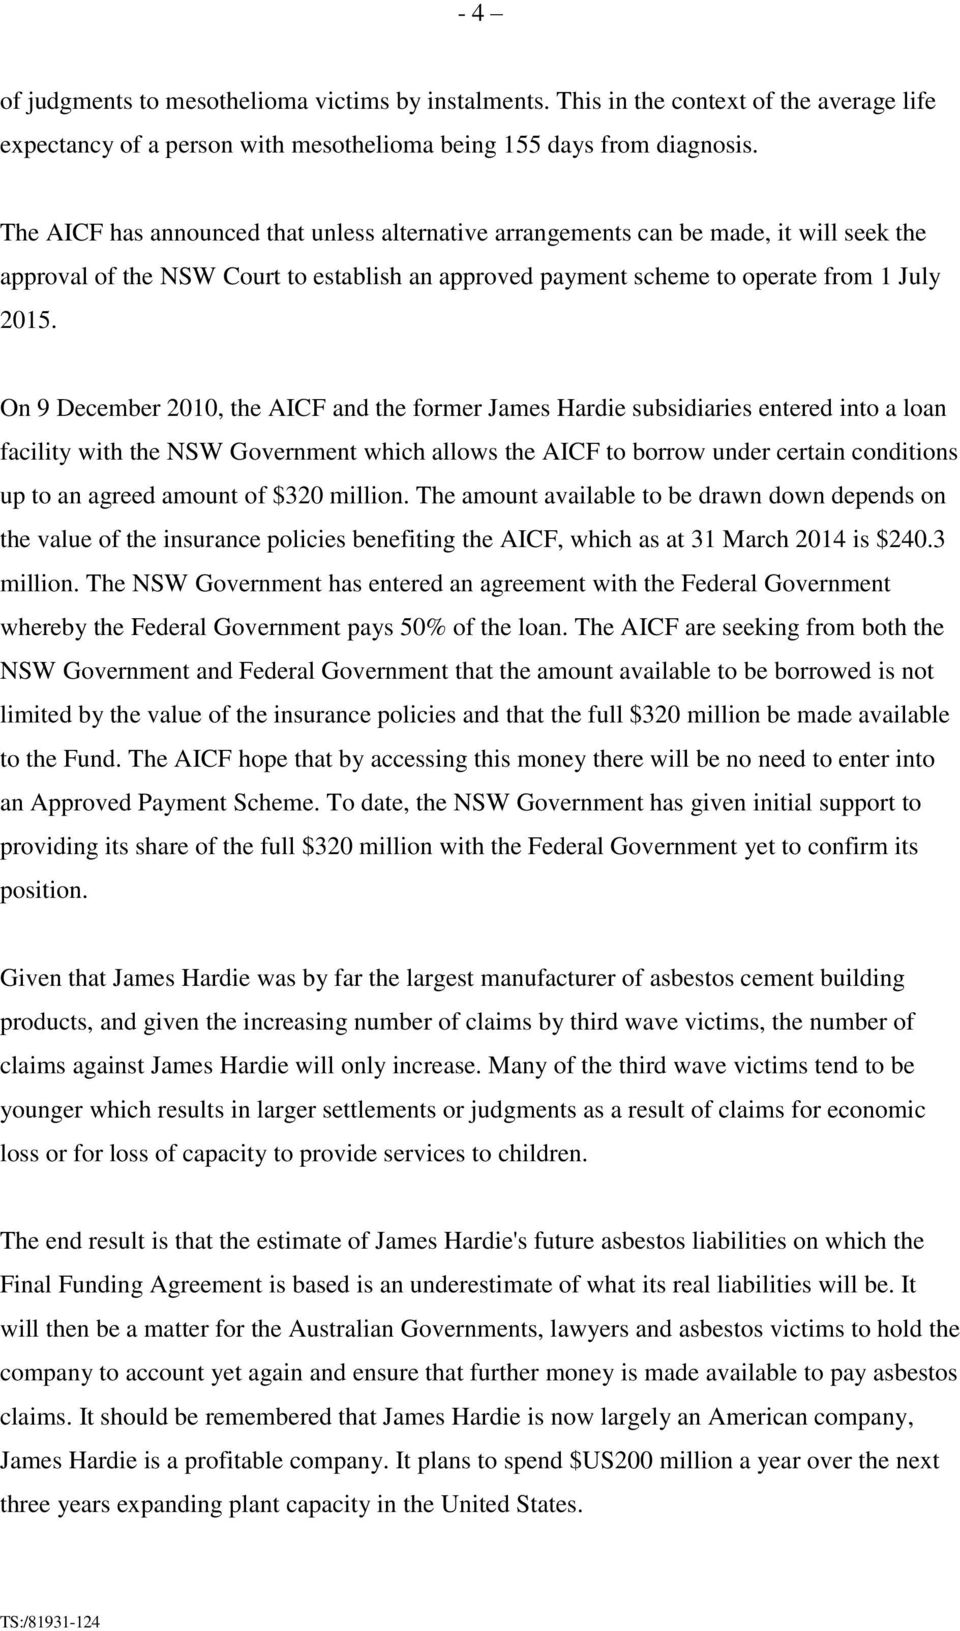 On 9 December 2010, the AICF and the former James Hardie subsidiaries entered into a loan facility with the NSW Government which allows the AICF to borrow under certain conditions up to an agreed